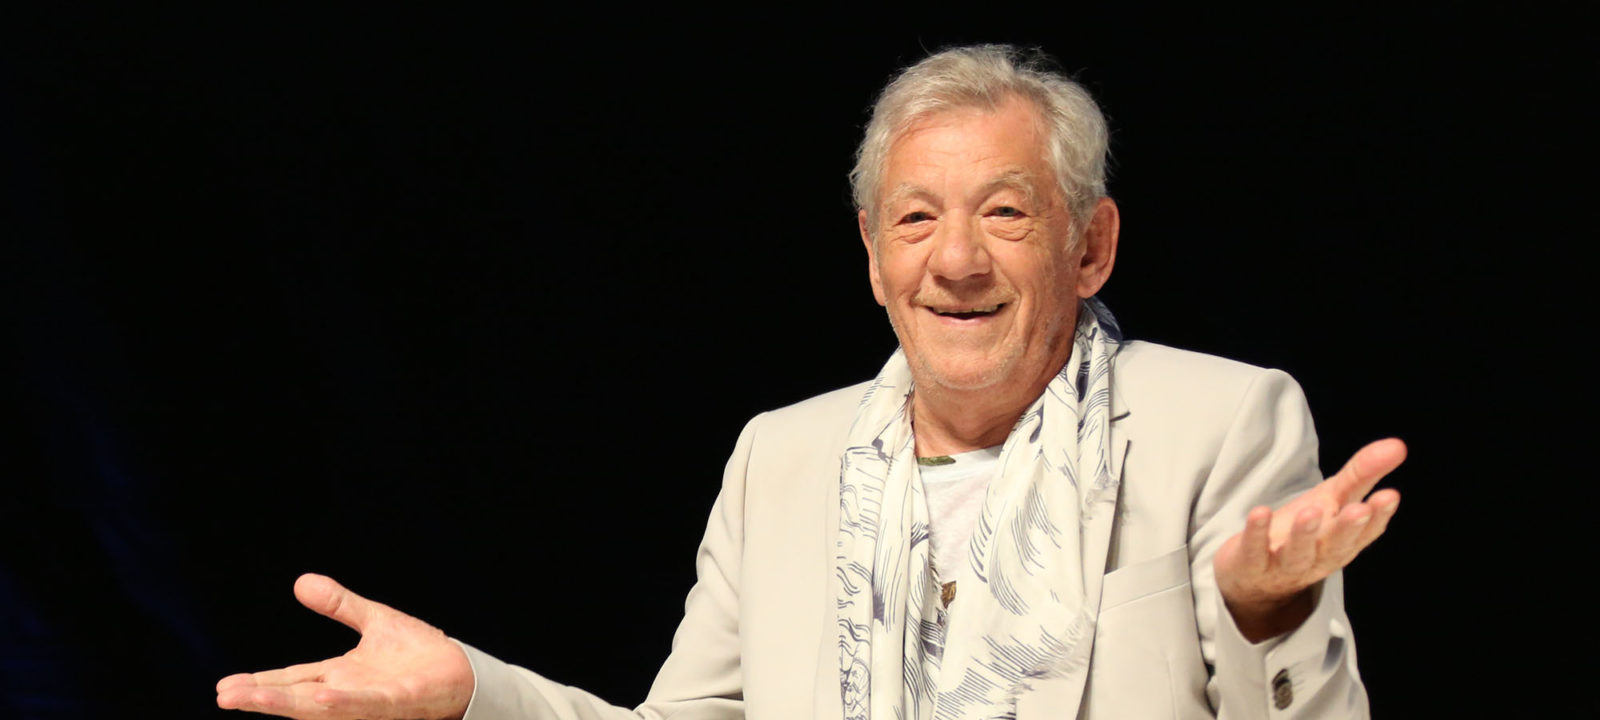 Sir Ian McKellen Attends The Cannes Lions For The First Time With The Brooklyn Brothers